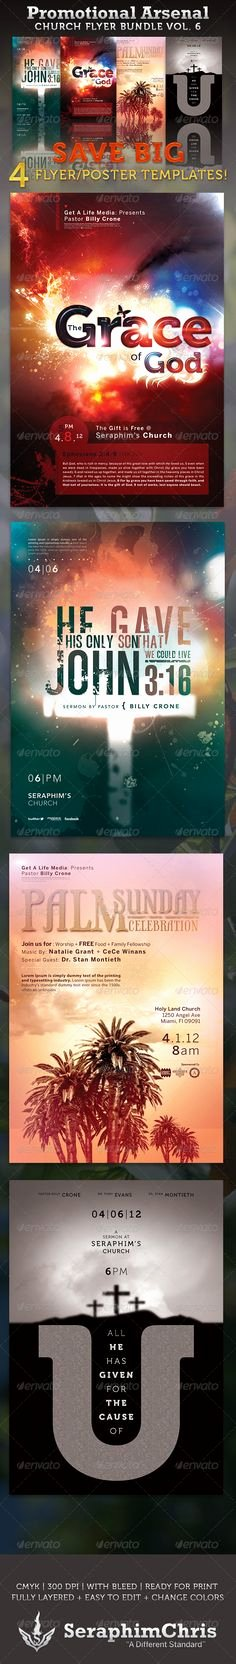 Free Church Flyer Templates Lovely Free Christian Flyer Templates